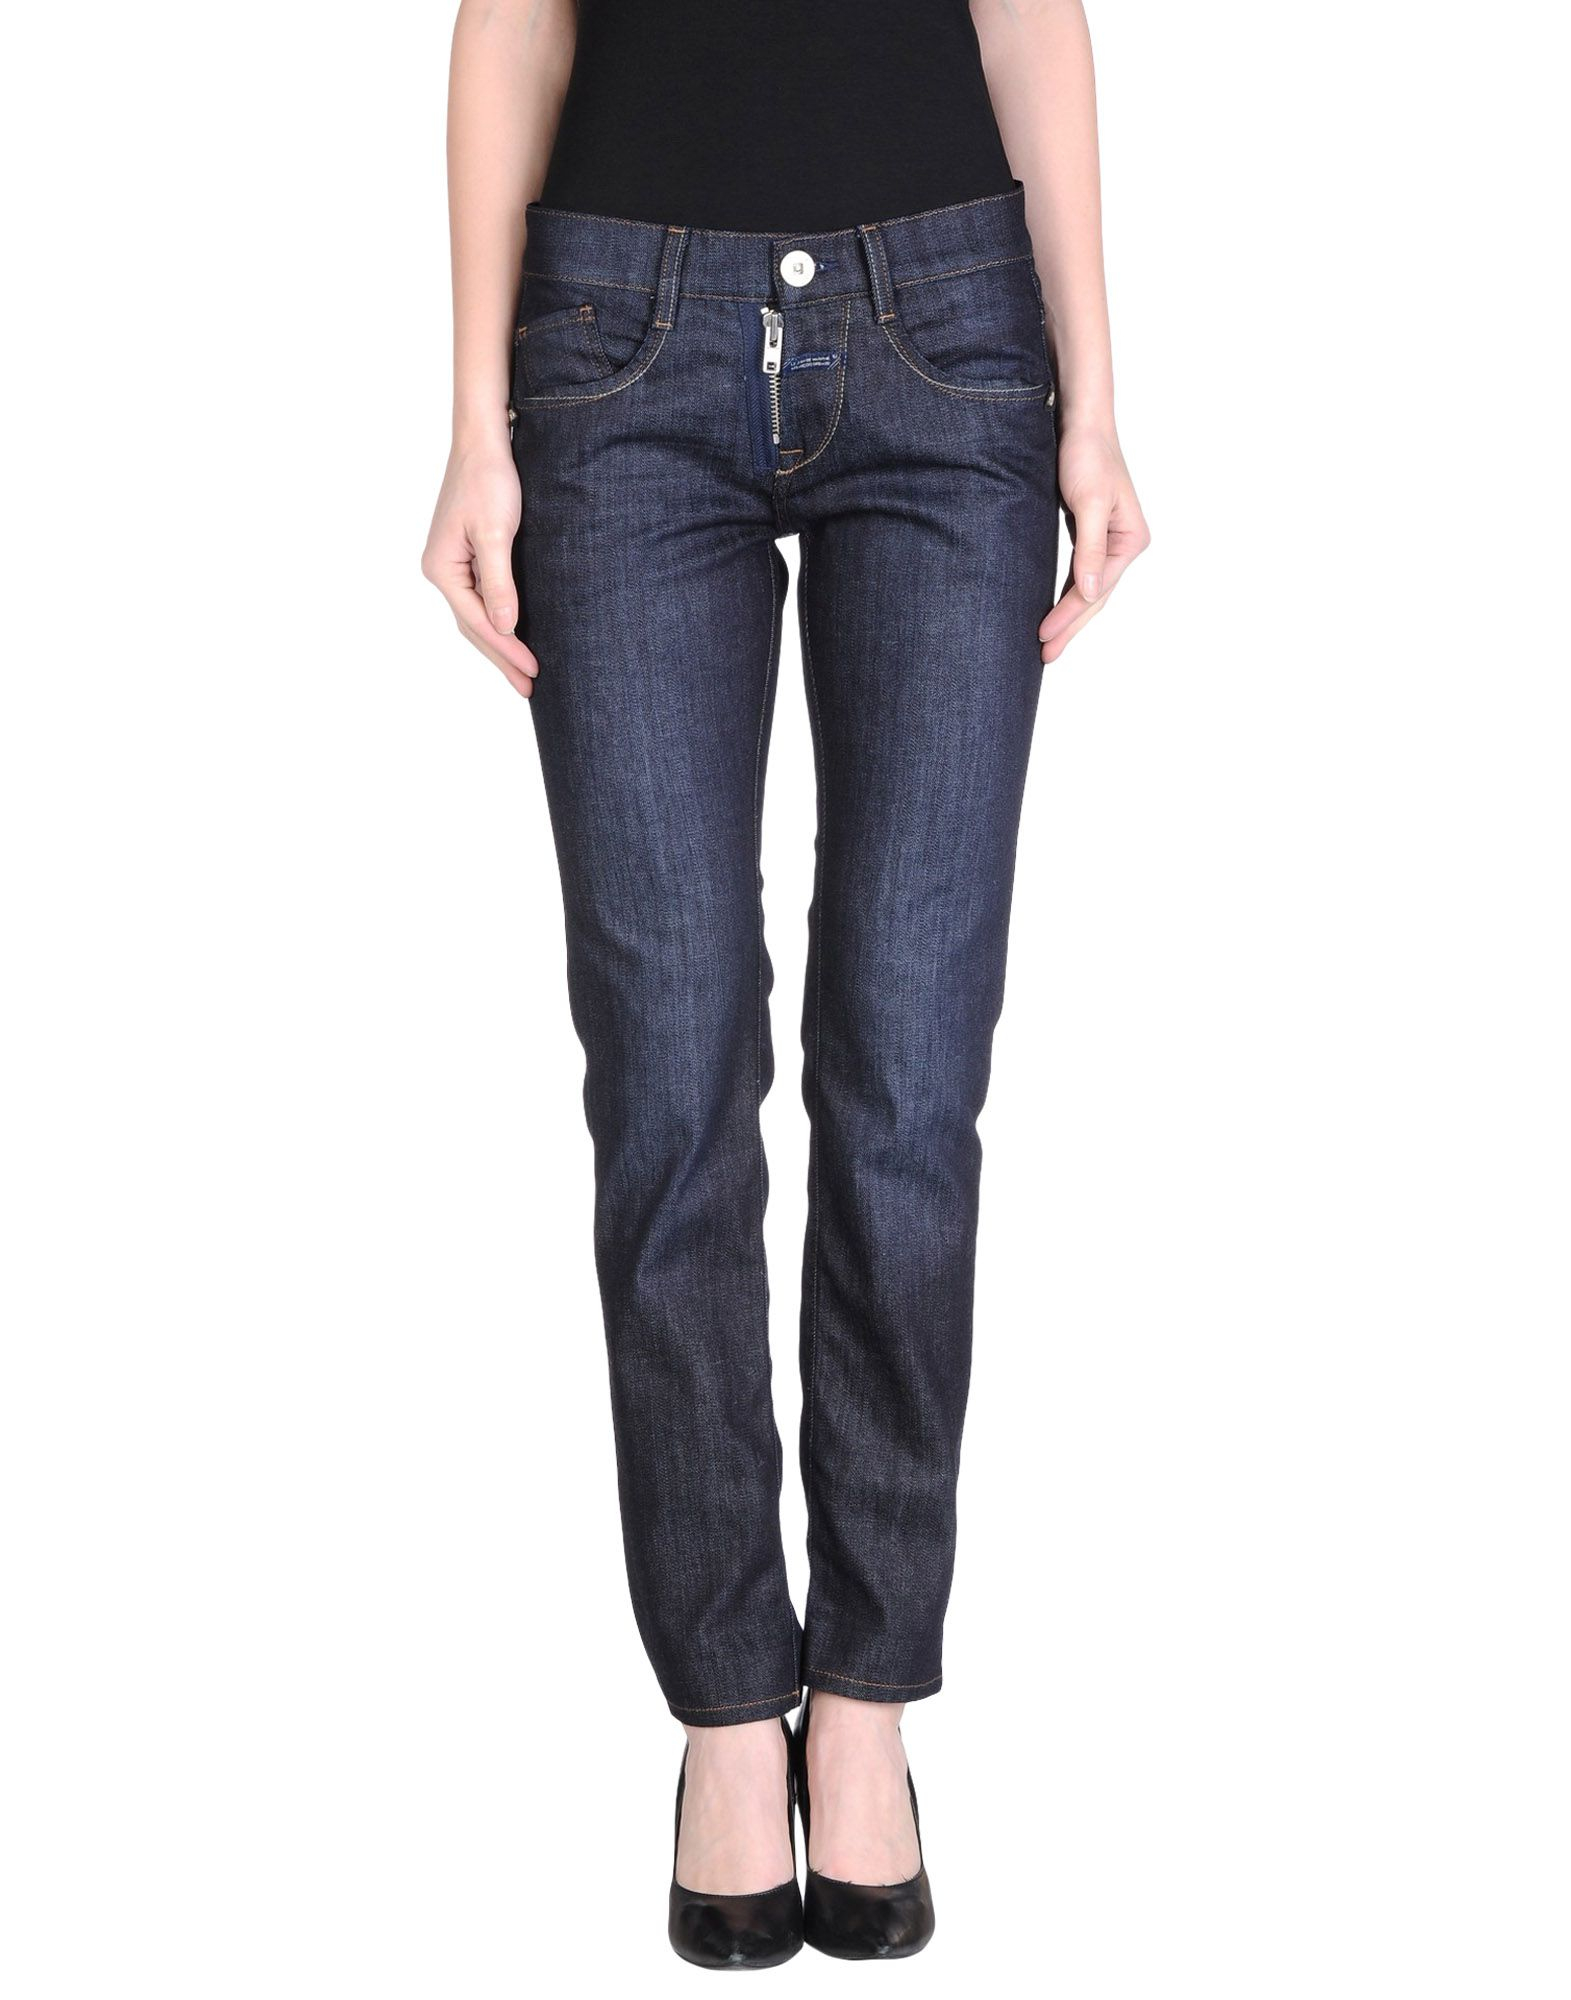 Girbaud Jeans For Women